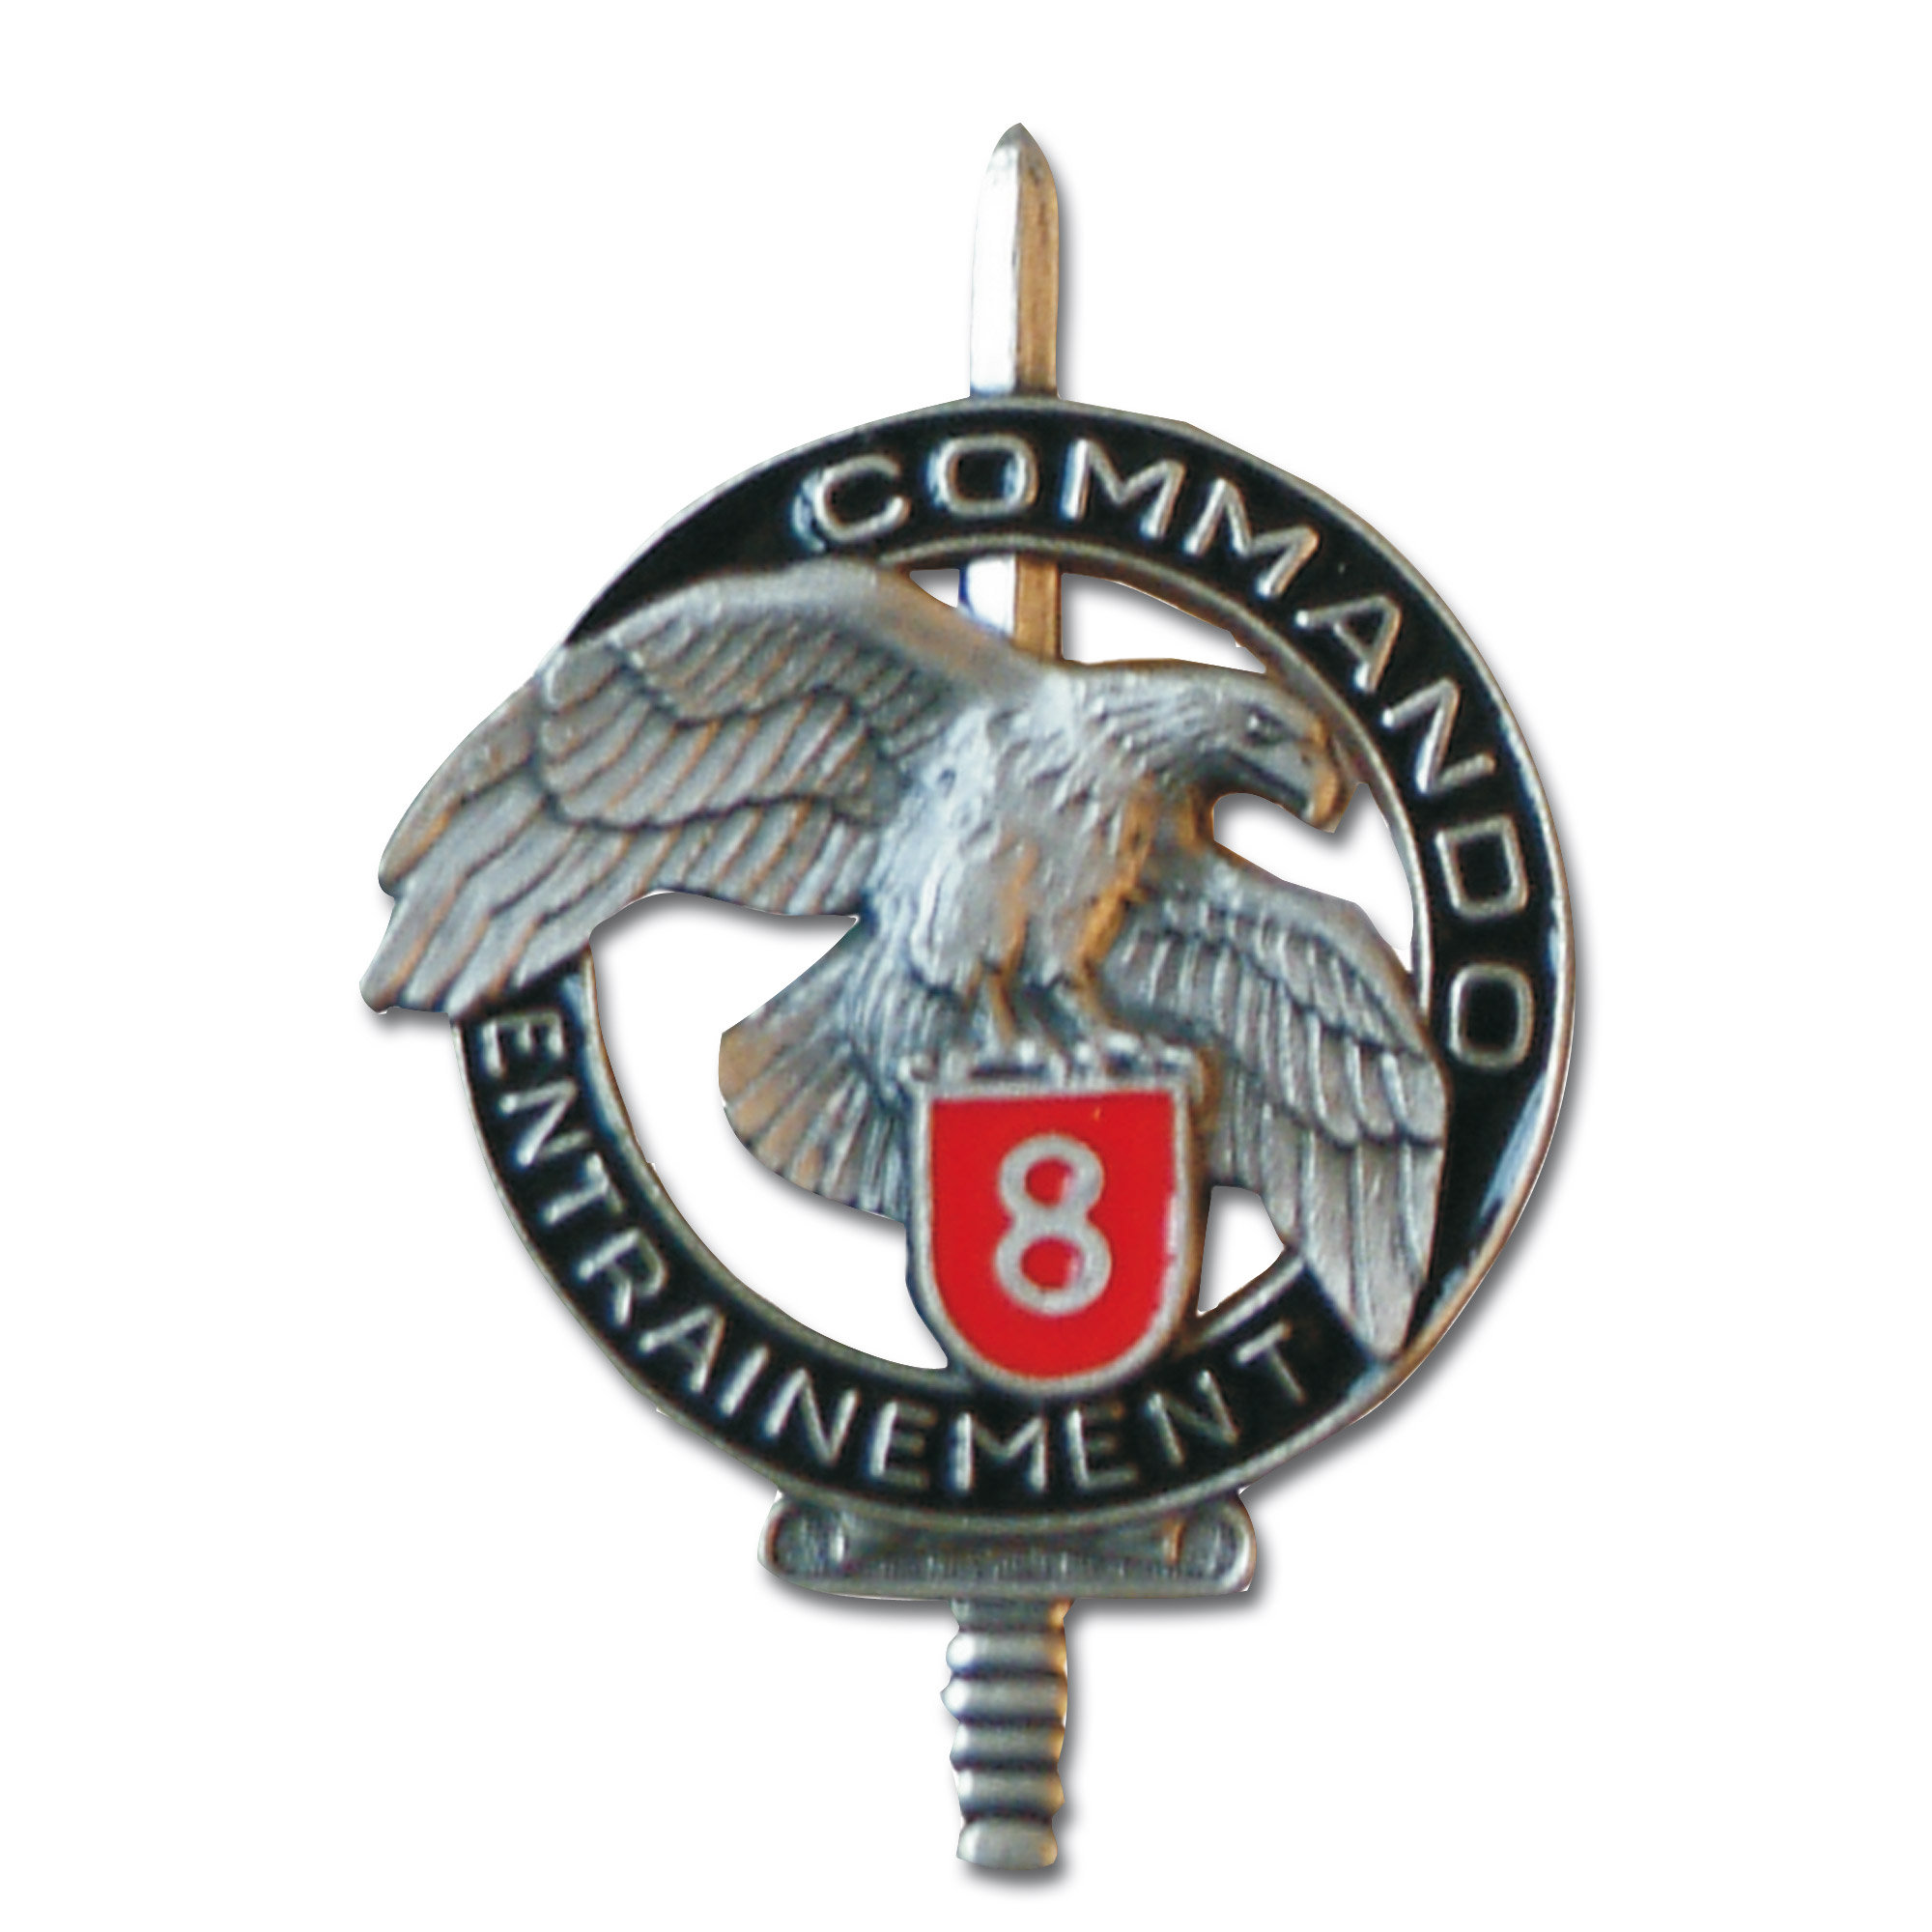 French metall insignia Commando CEC 8